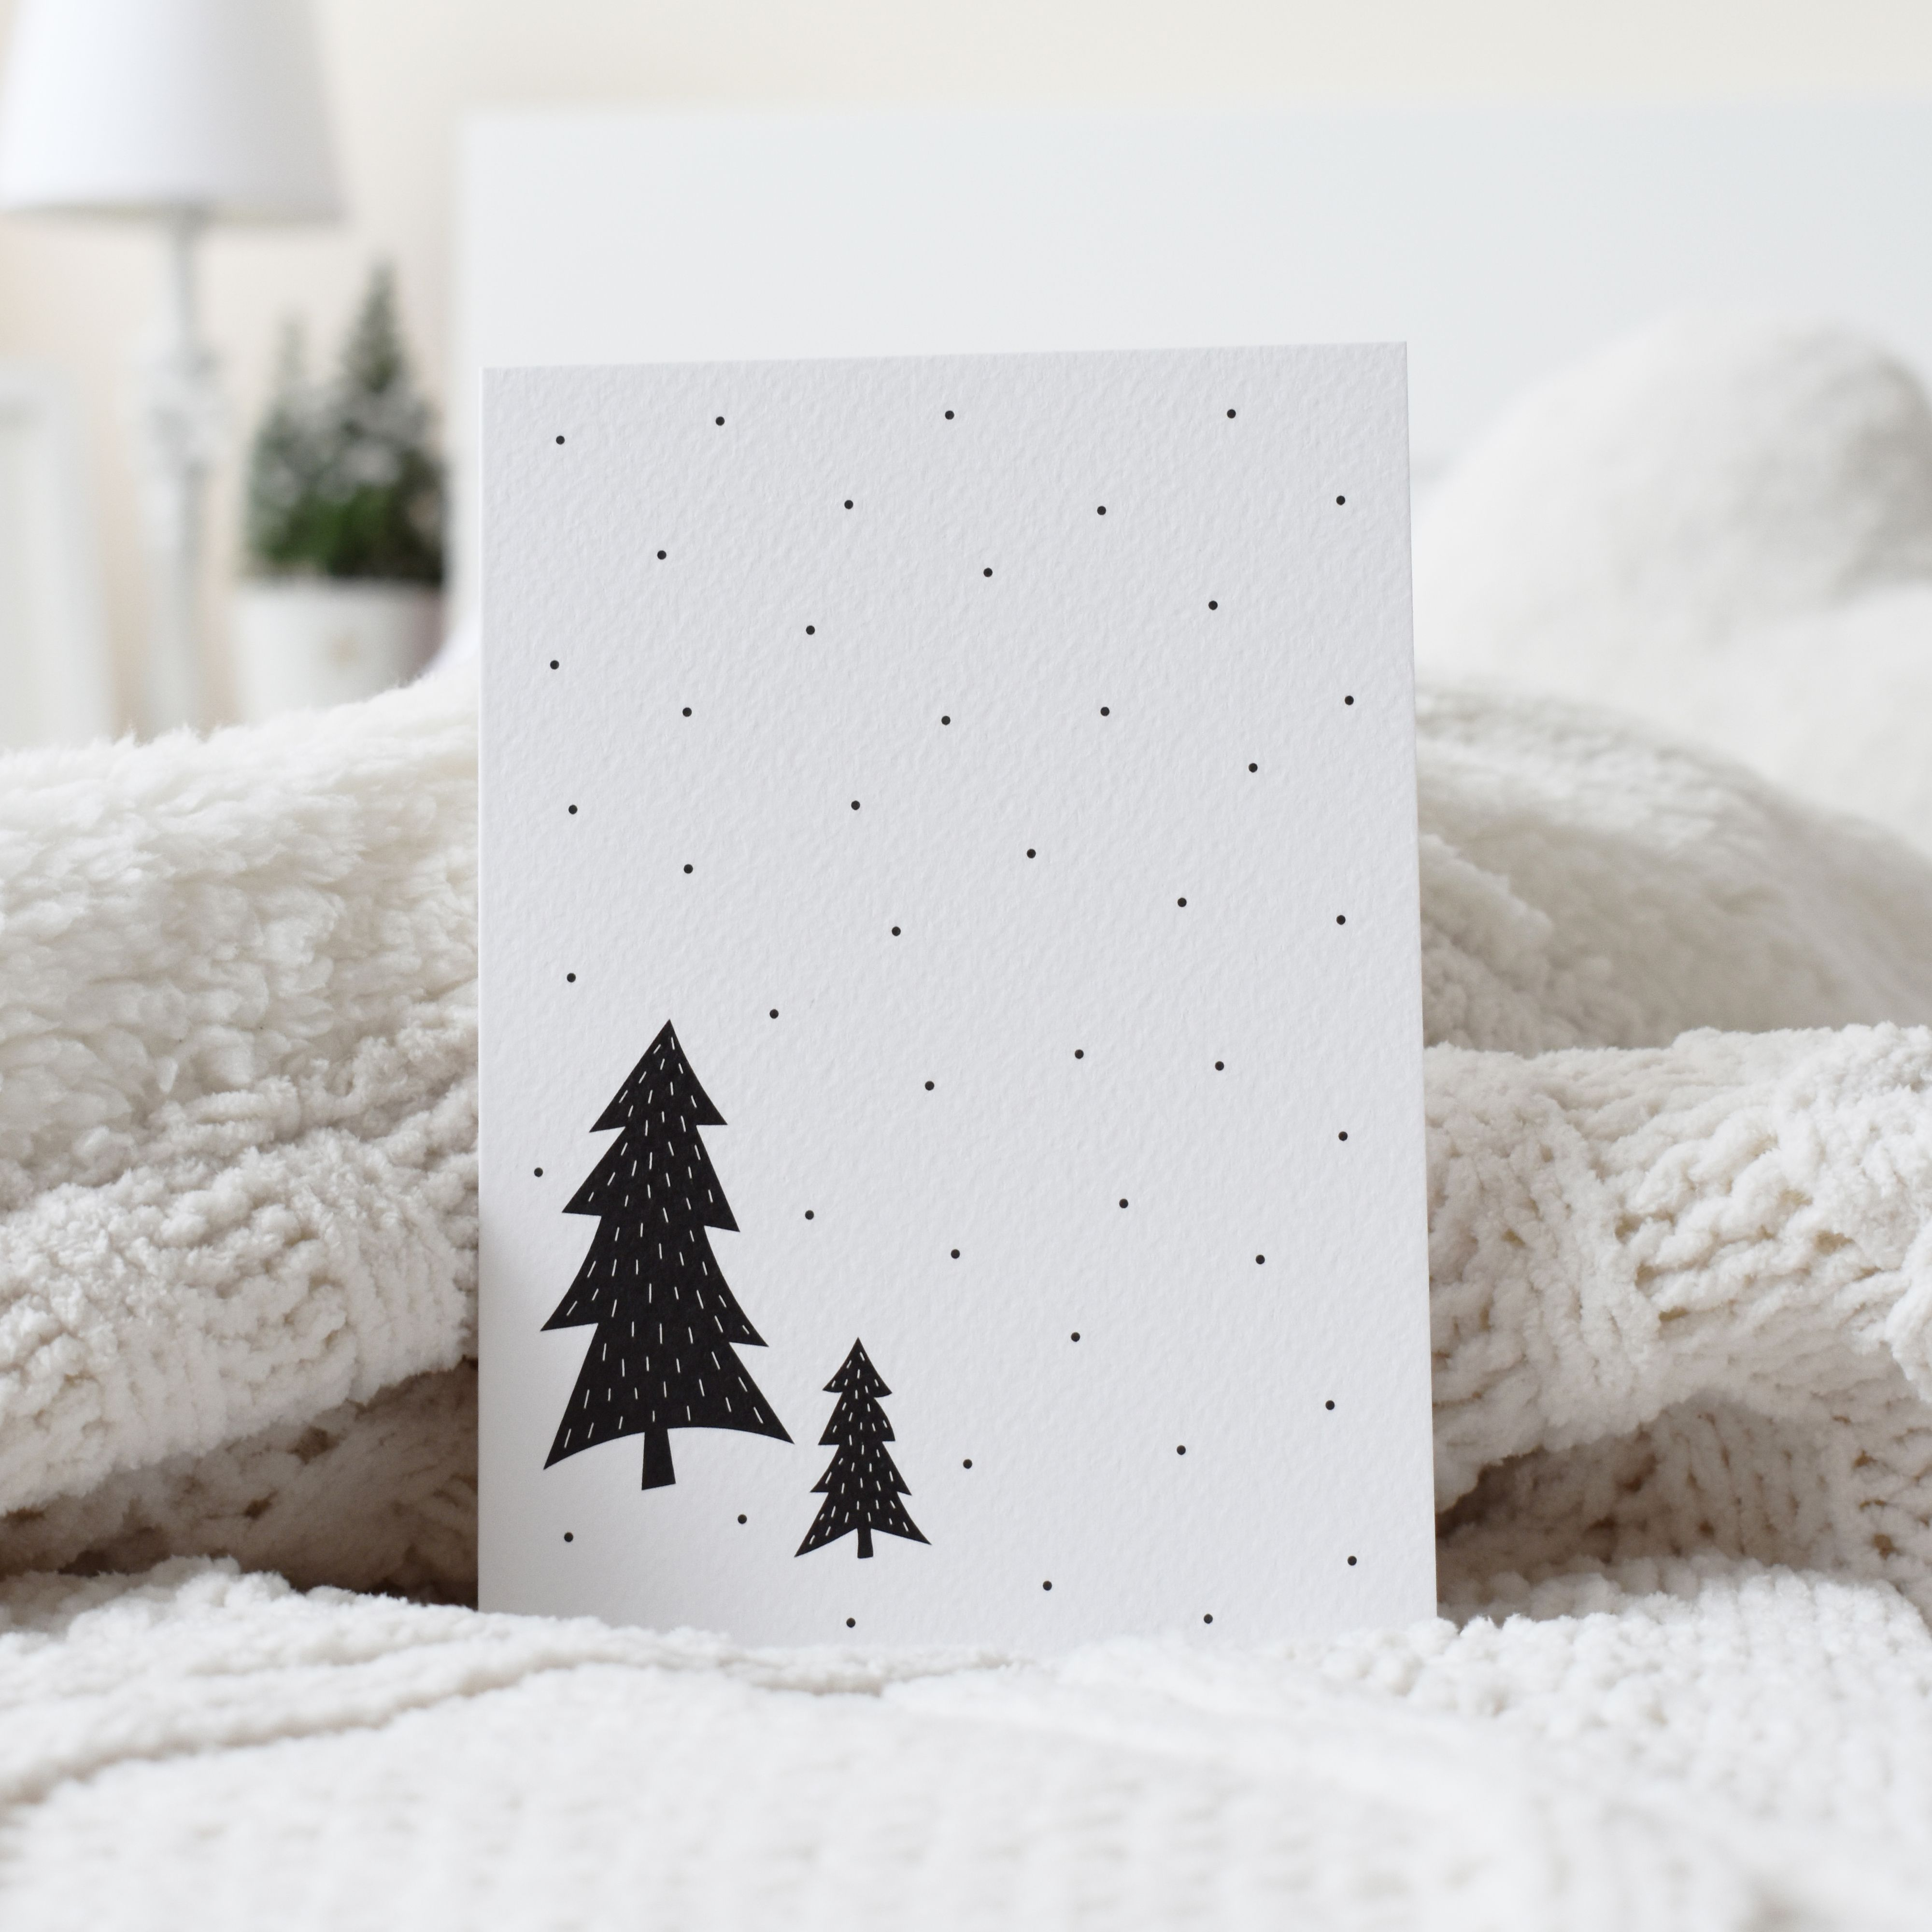 Black And White Christmas Trees Snowing Scandinavian Design Minimalist Greeting Card Elemente Design Greeting Card Size White Christmas Trees Xmas Cards